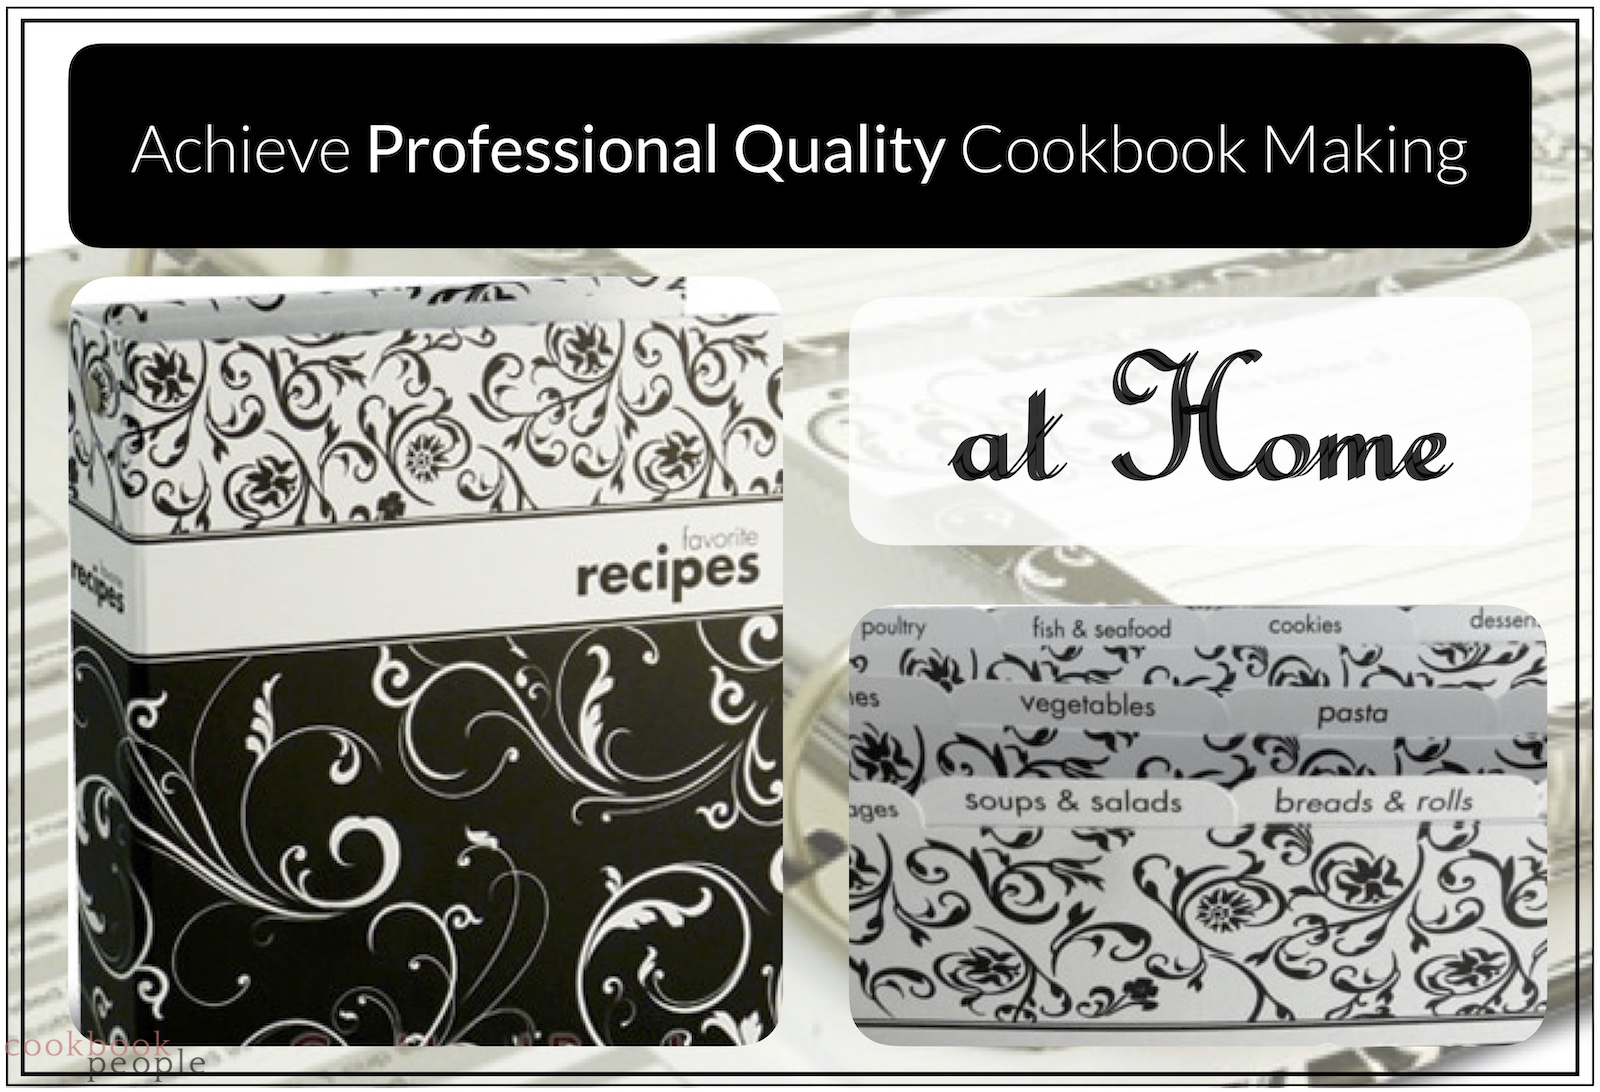 Cookbook People recipe binder and dividers with text: Achieved Professional Quality Cookbook Making at Home